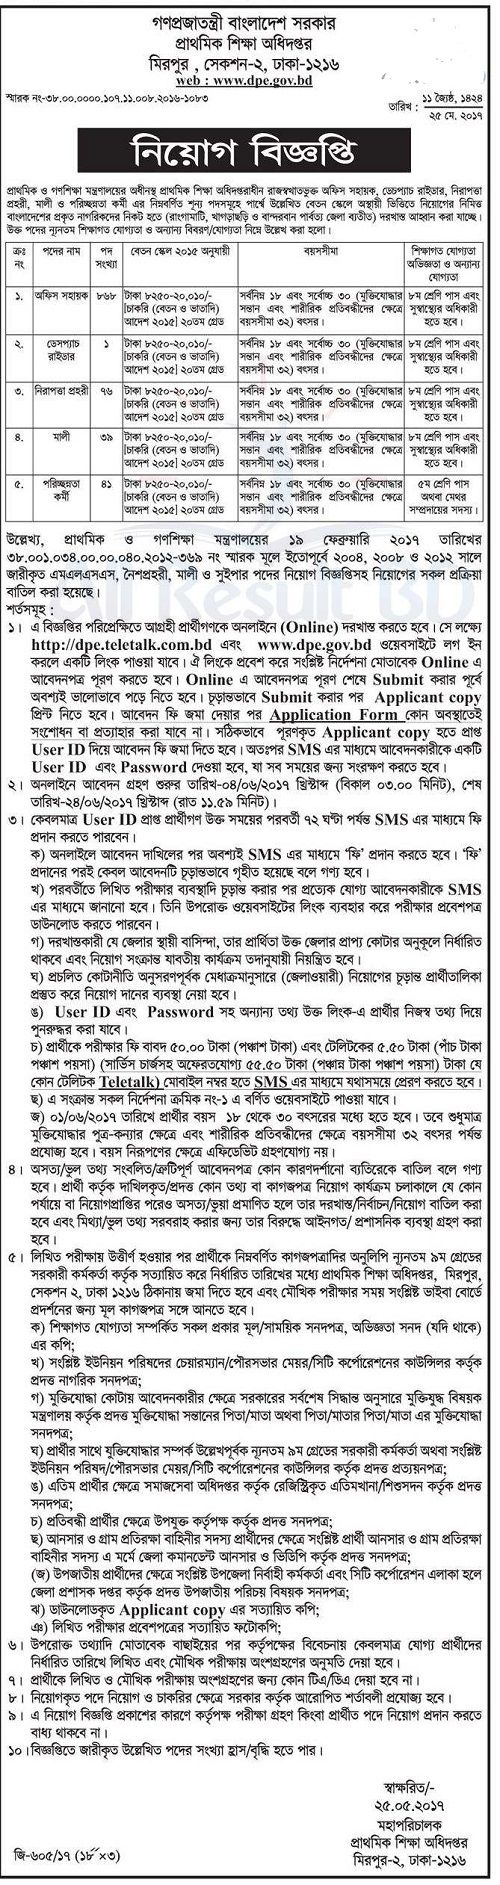 DPE Bangladesh Job Circular 2017, DPE Job Circular 2017, DPE Job Circular, Directorate of Primary Education Job Circular 2017, Directorate of Primary Education Job Circular,